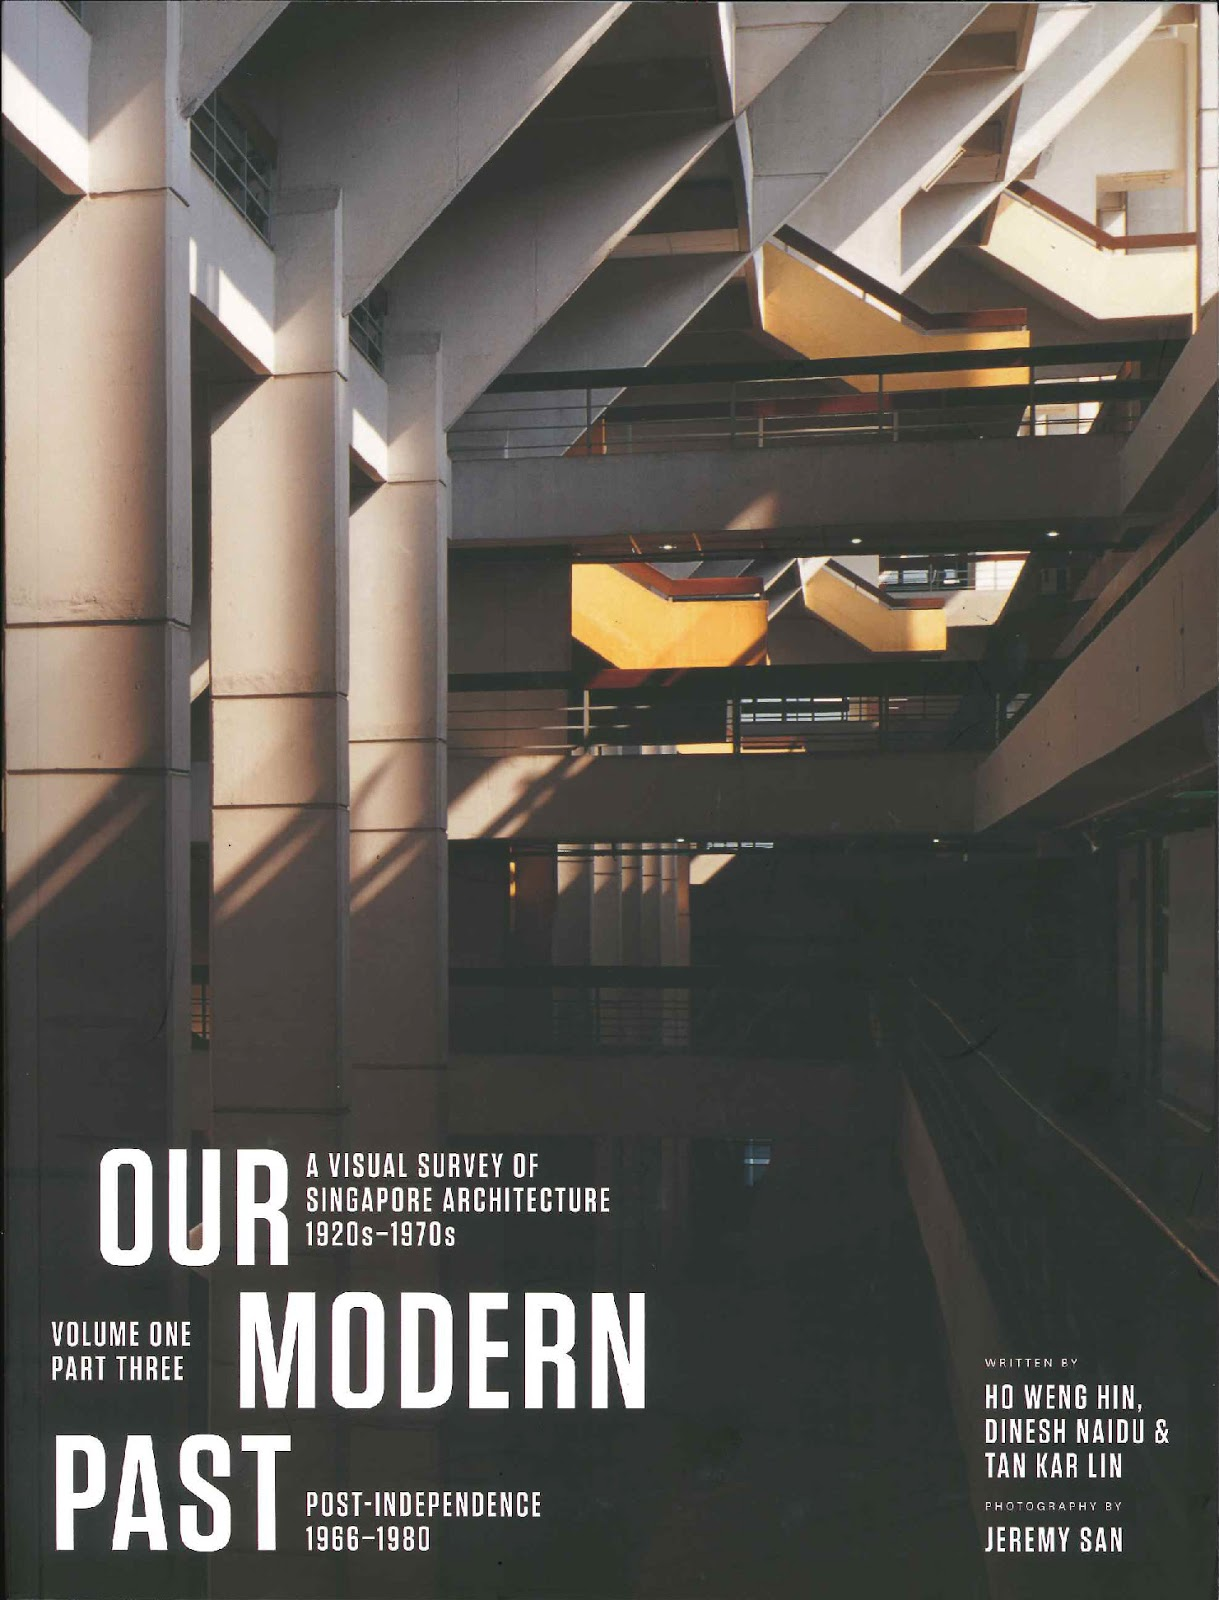 Notable Architecture our modern past - a visual survey of singapore architecture 1920s